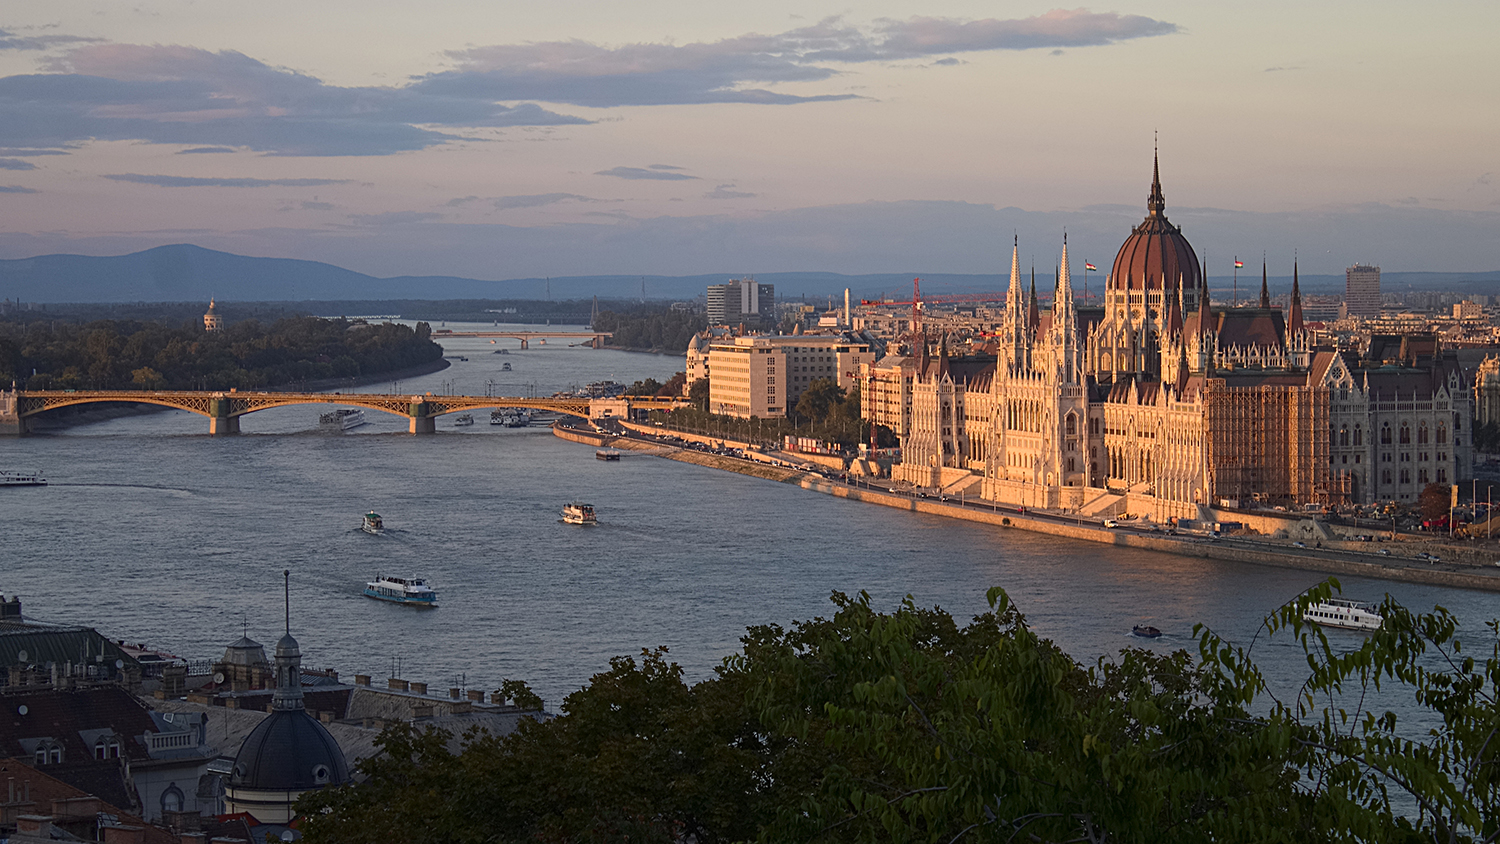 View of the Parliament and the Danube from the Royal Palace